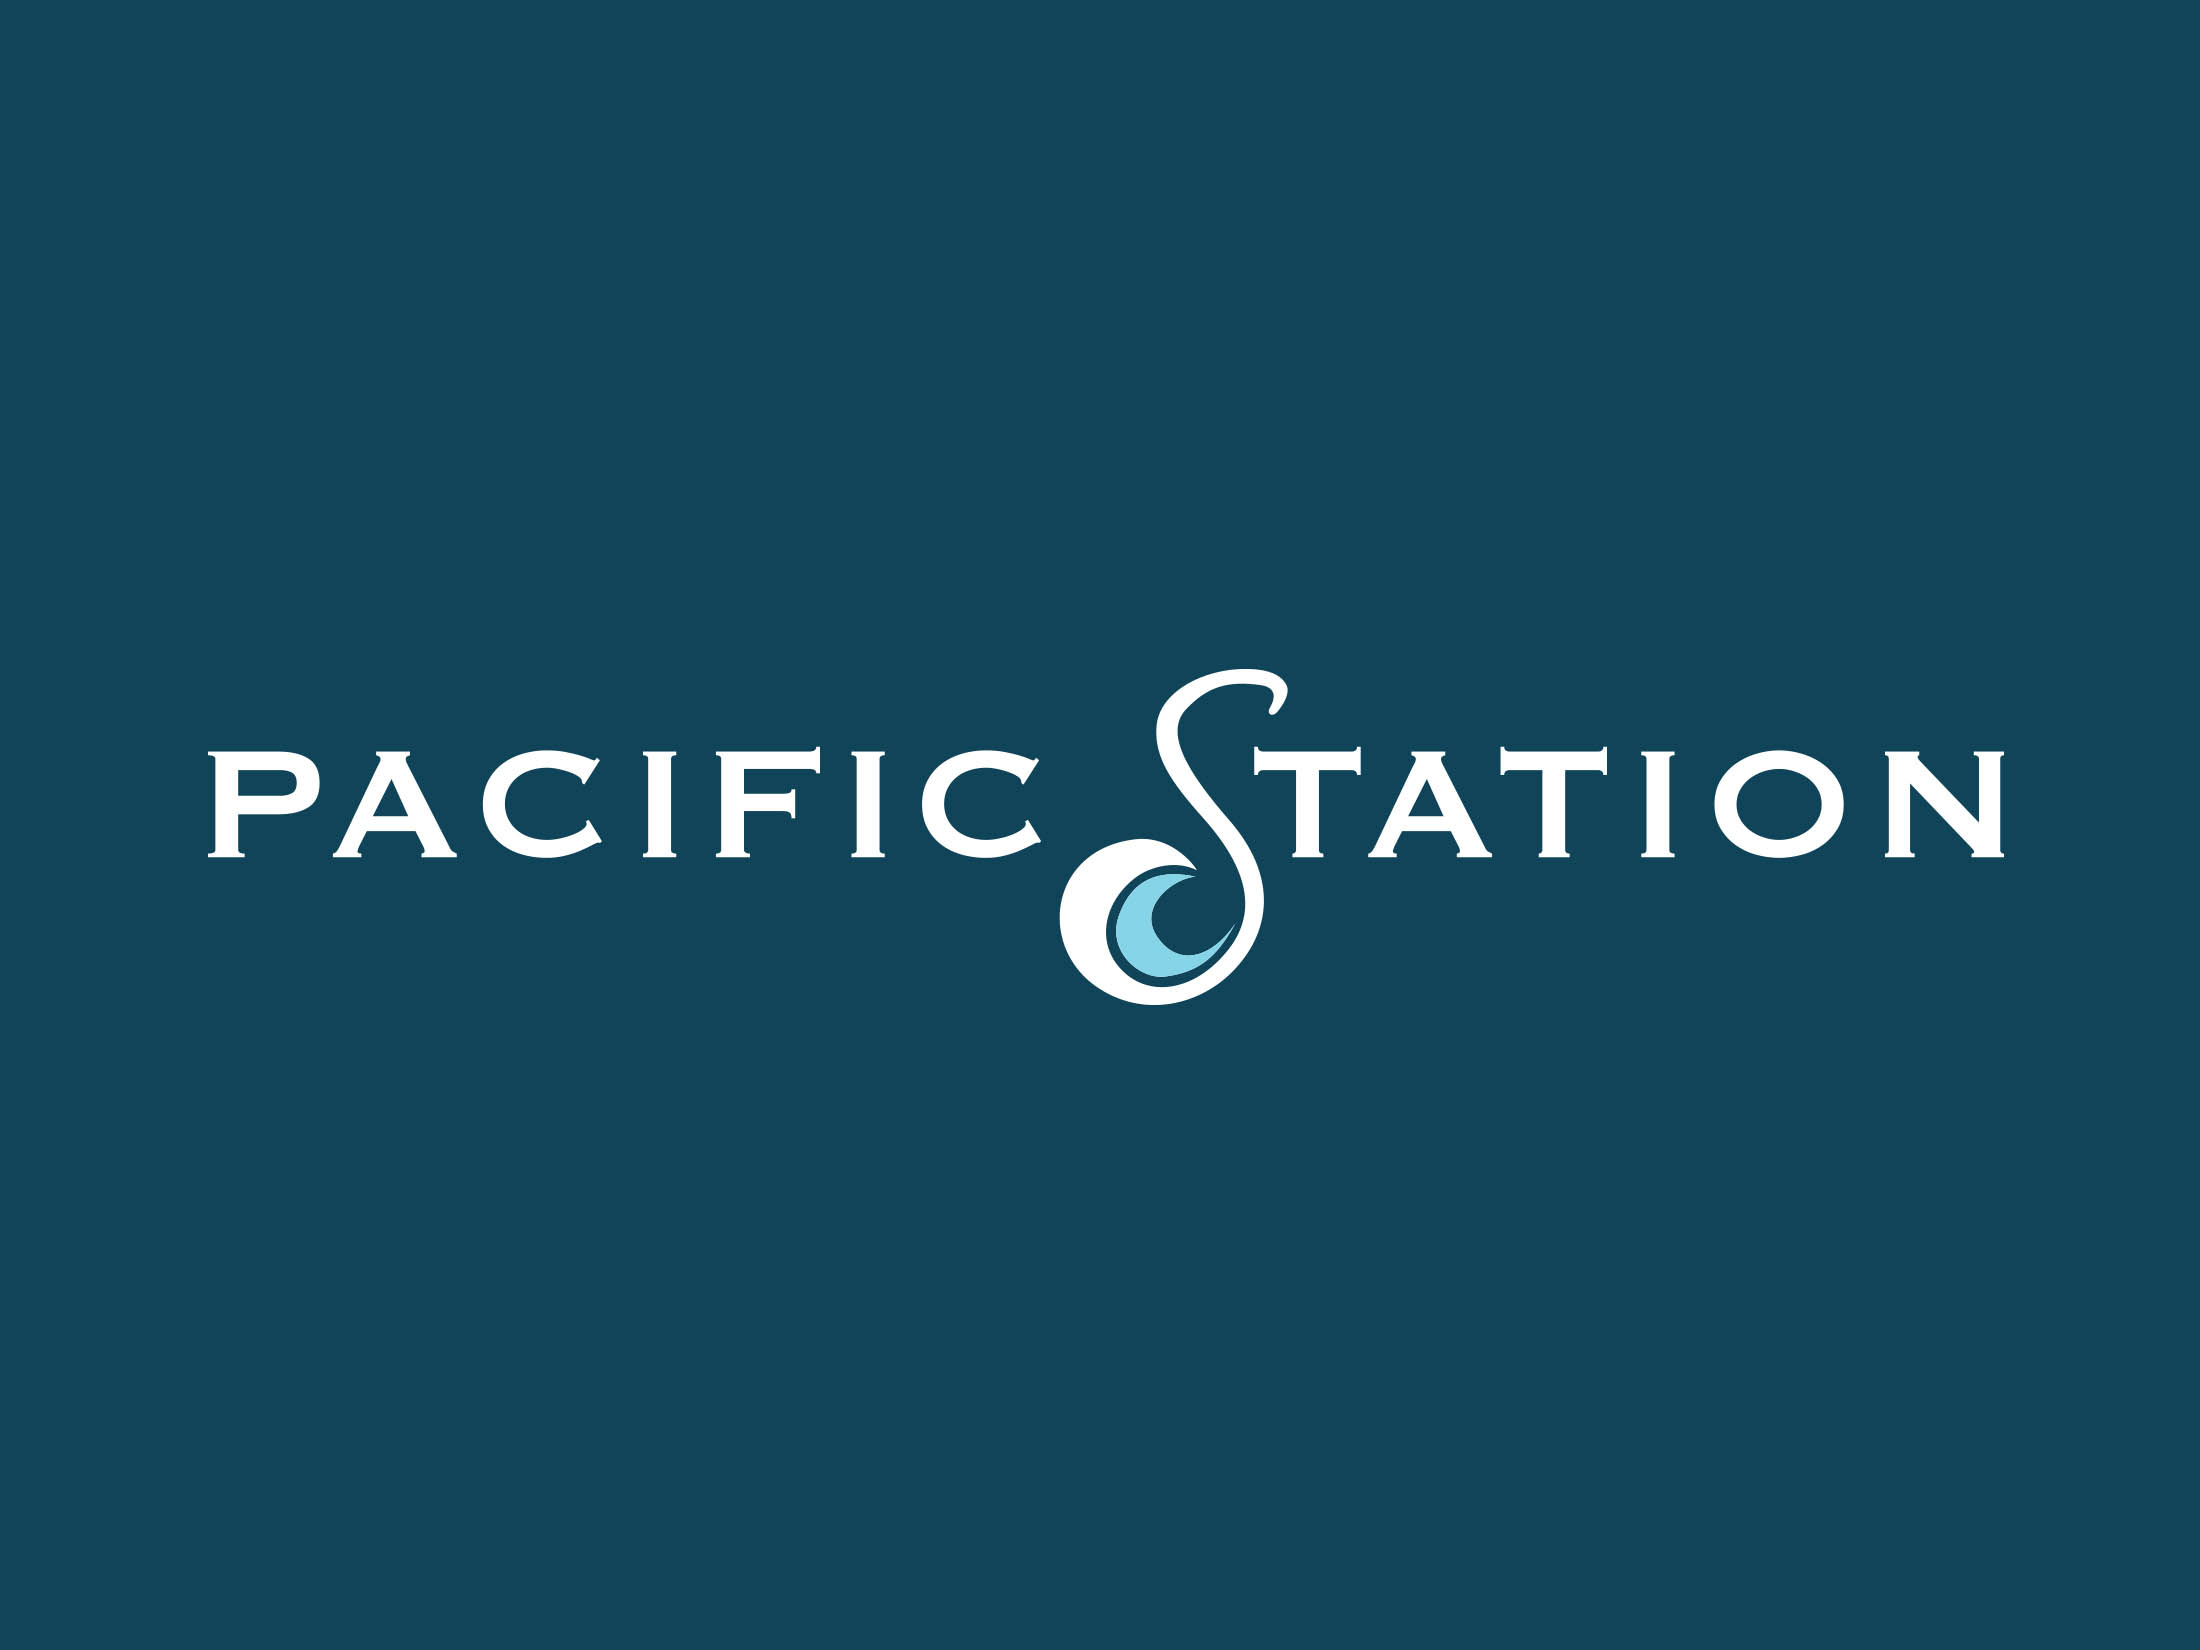 Pacific Station